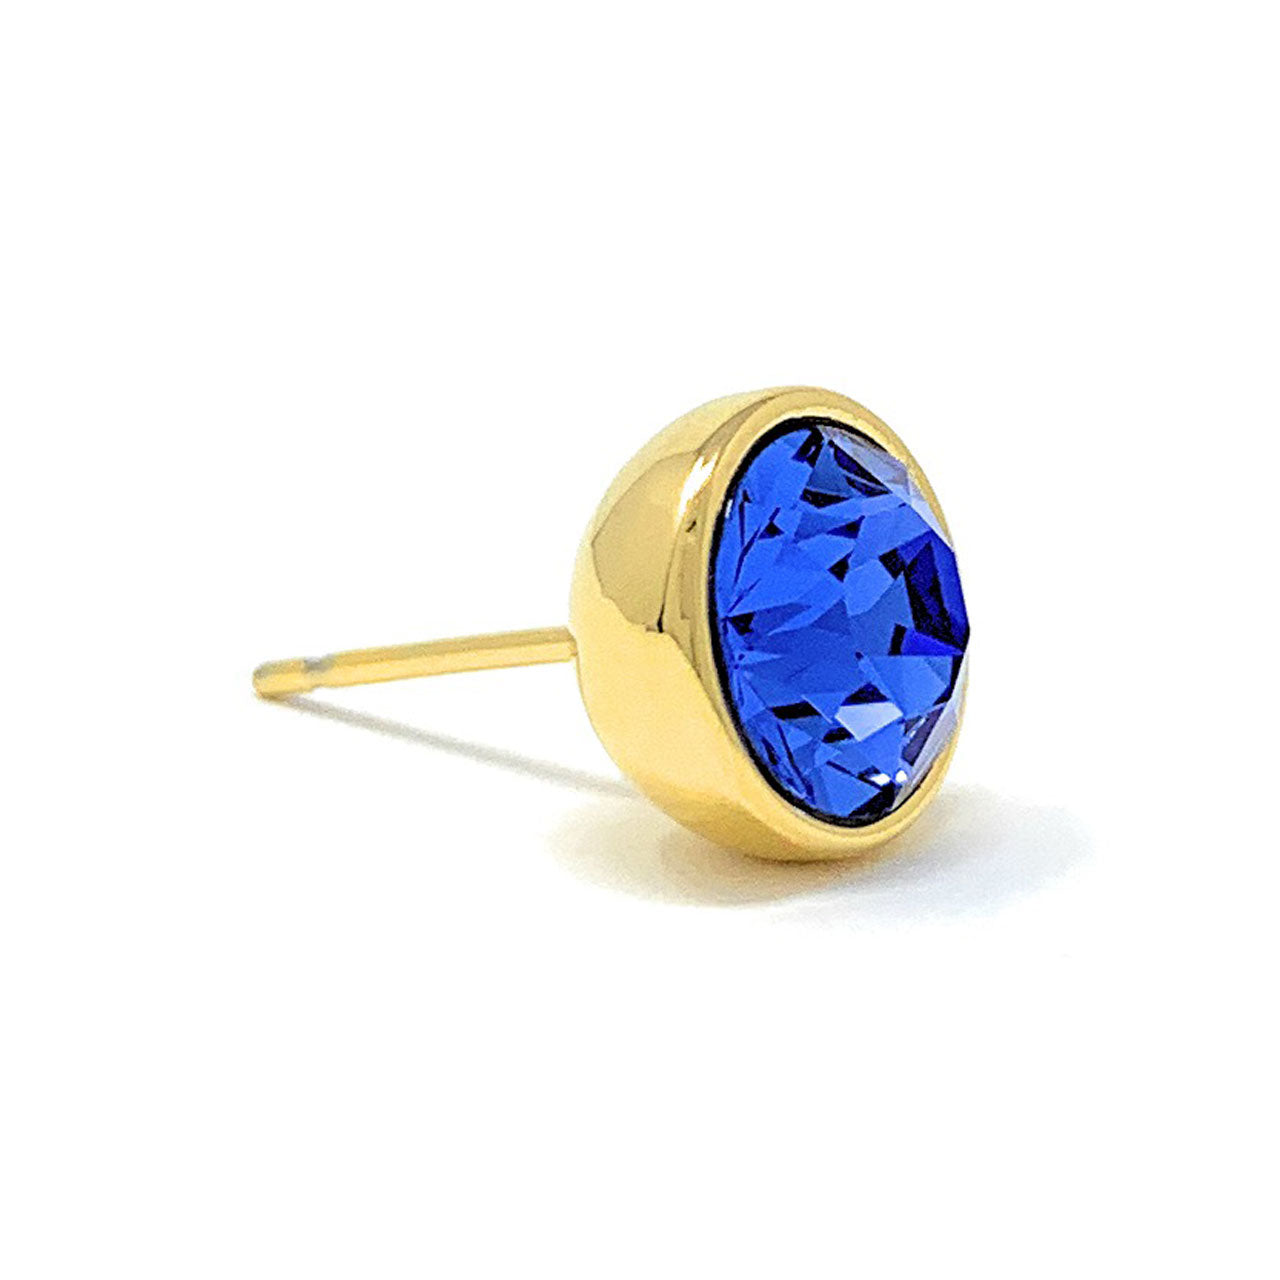 Harley Stud Earrings with Blue Sapphire Round Crystals from Swarovski Gold Plated - Ed Heart